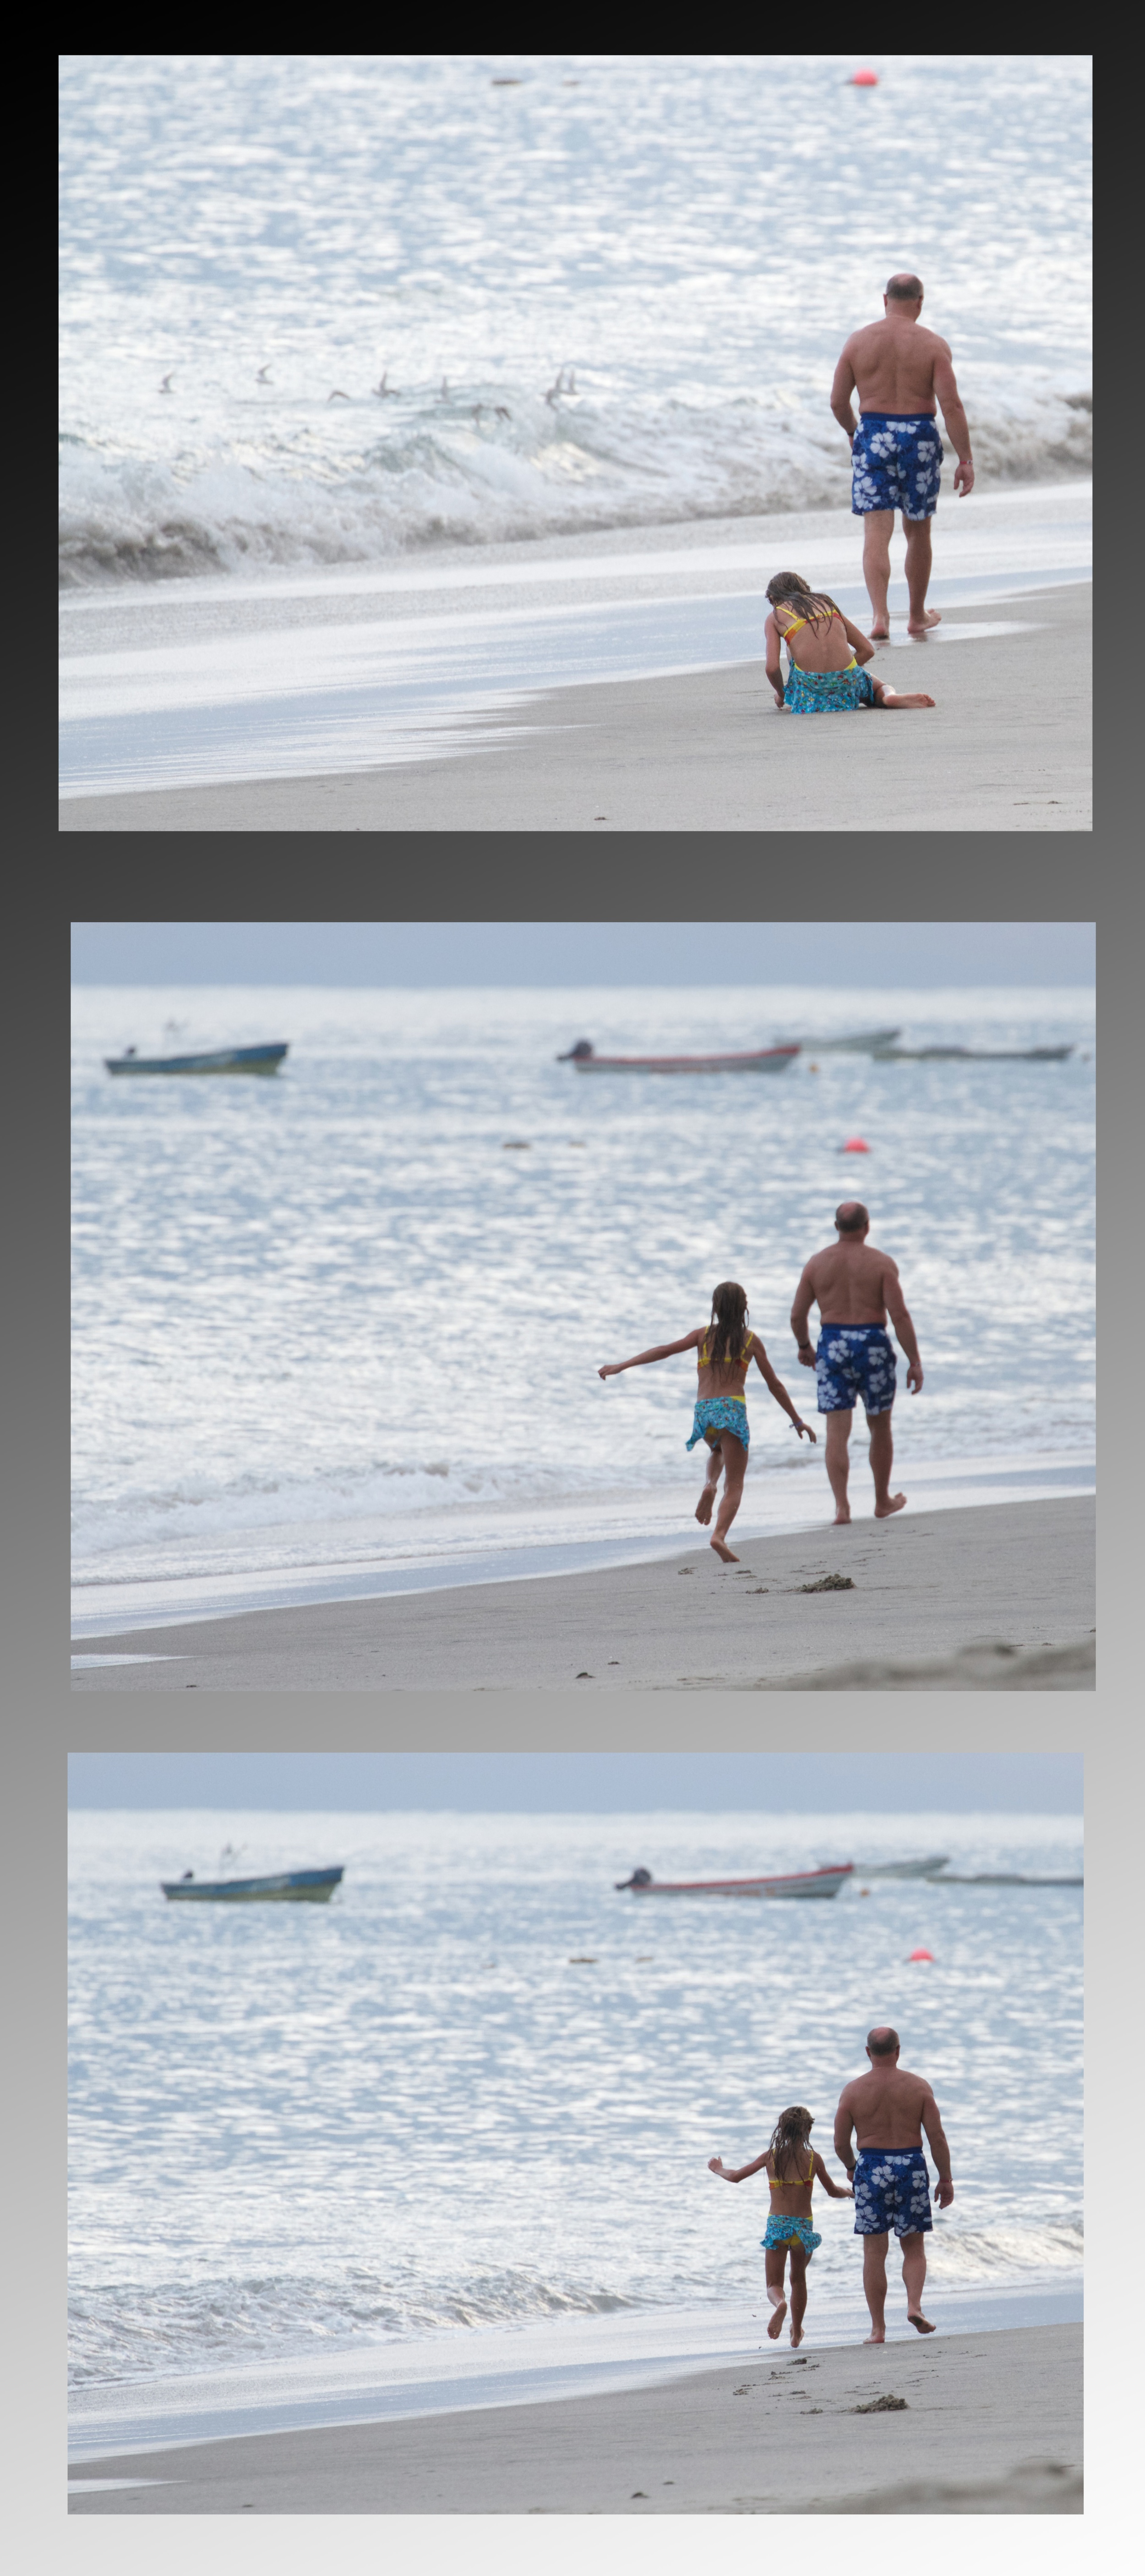 A little girl playing in the sand runs to catch up to her grandfather. Canon EOS 7D EF 100-300mm at 300mm f/5.6 1/400 ISO 640 +2ev